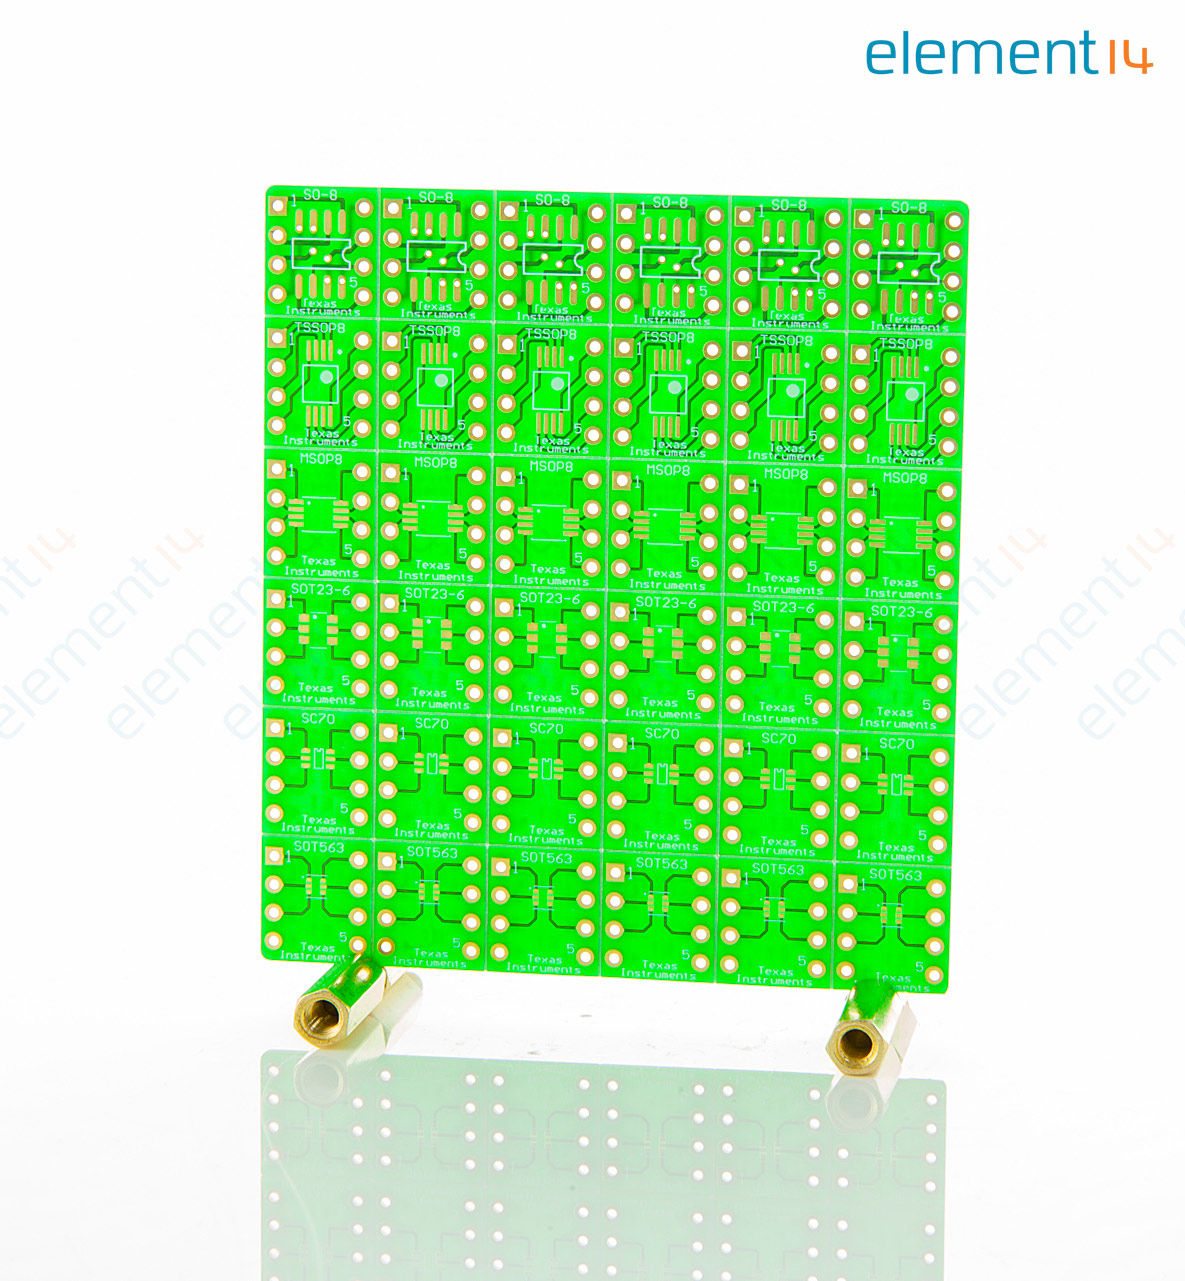 Dip Adapter Evm Texas Instruments Evaluation Module 3m Small Outline Integrated Circuit Test Clips Sotc8 Soic 8 Tssop Msop Sot23 6 Sc70 Sot563 Drl Packages